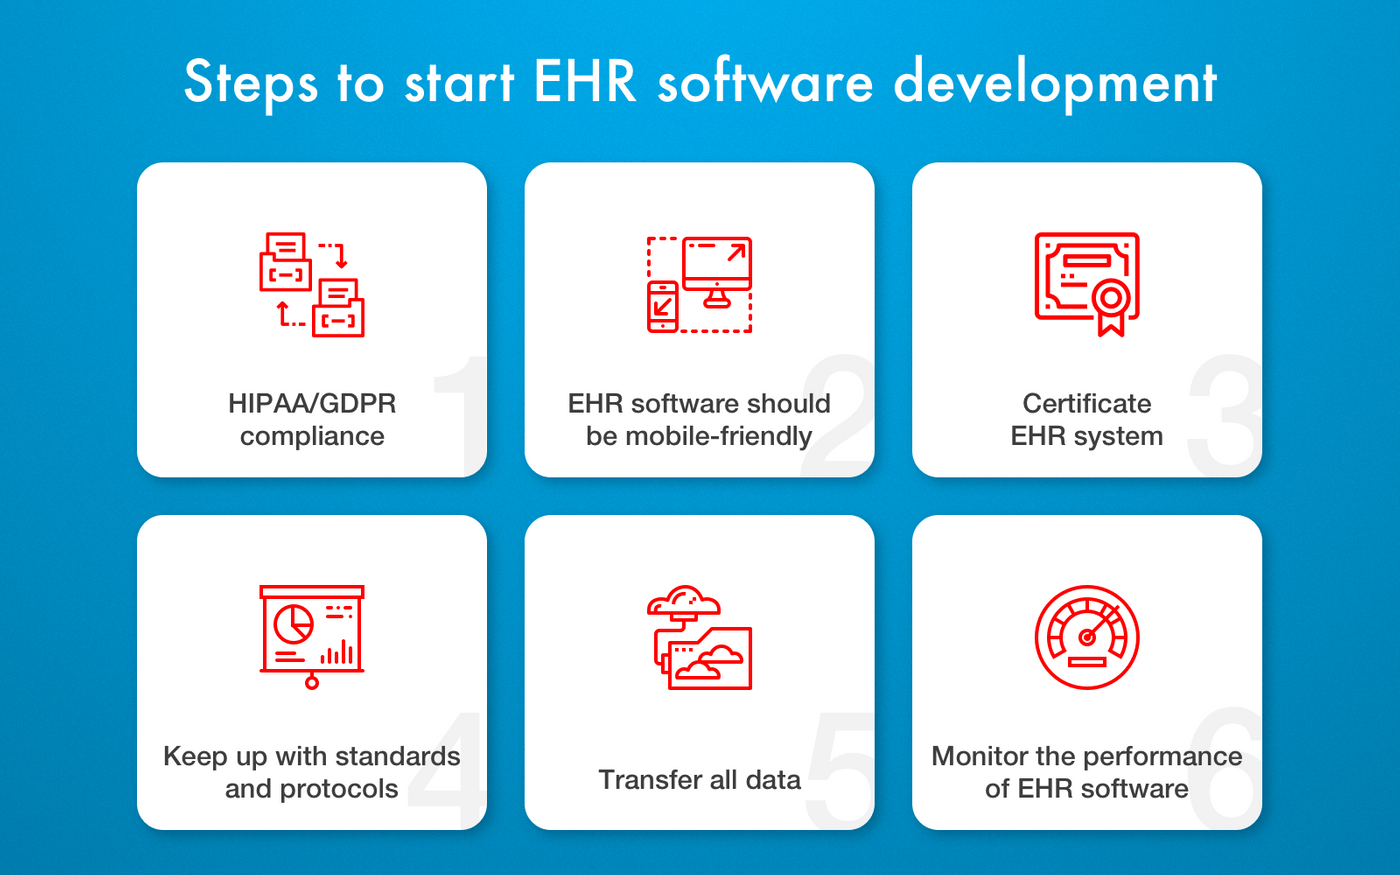 Stages for EHR software launch